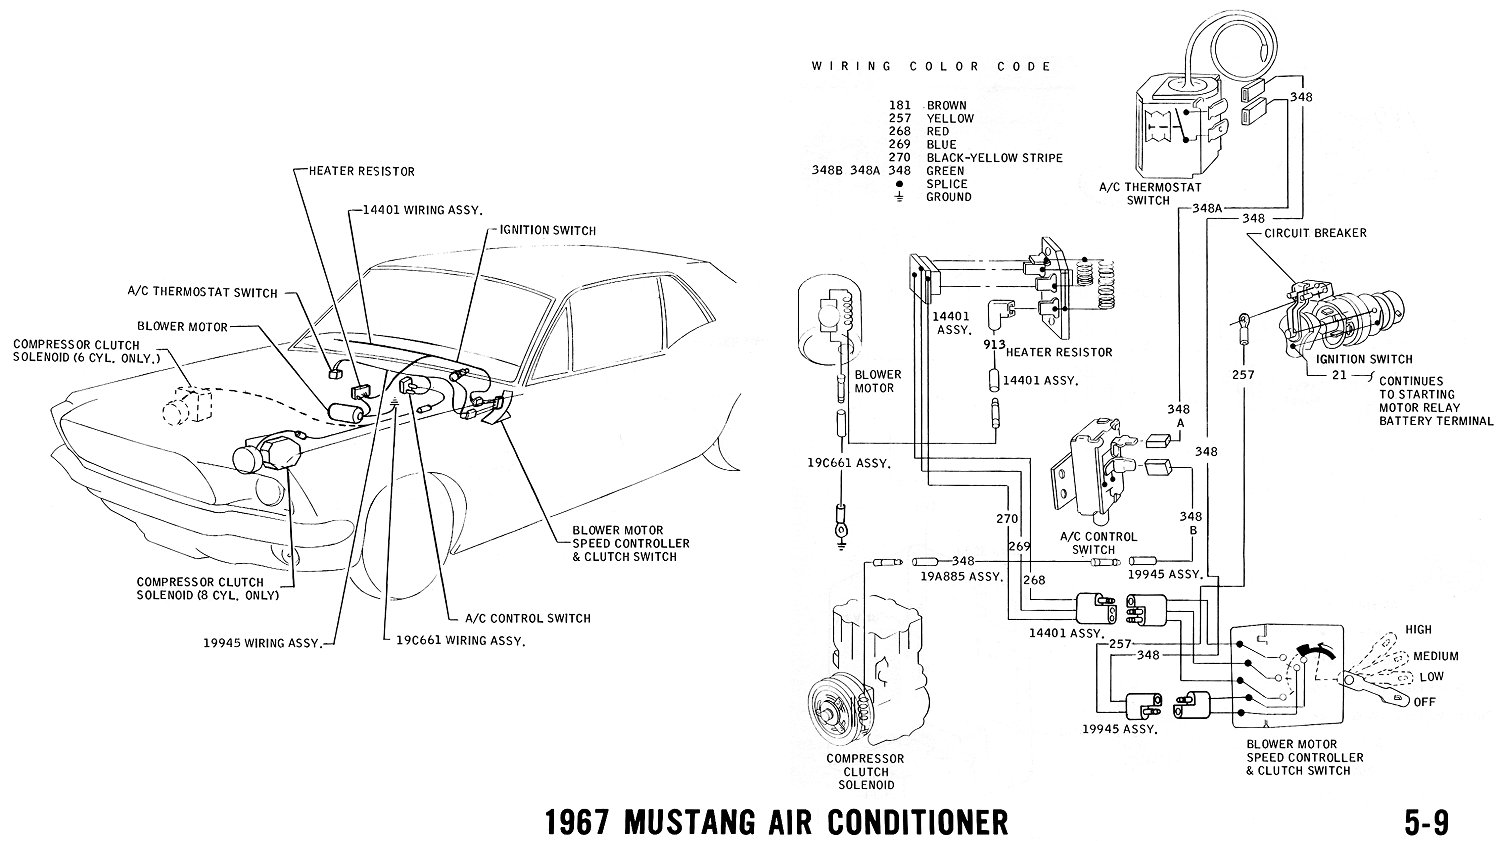 1970 Ford Mach 1 Wiring Diagram Schematics Diagrams 1969 Road Runner Schematic 1967 Mustang And Vacuum Average Joe 1968